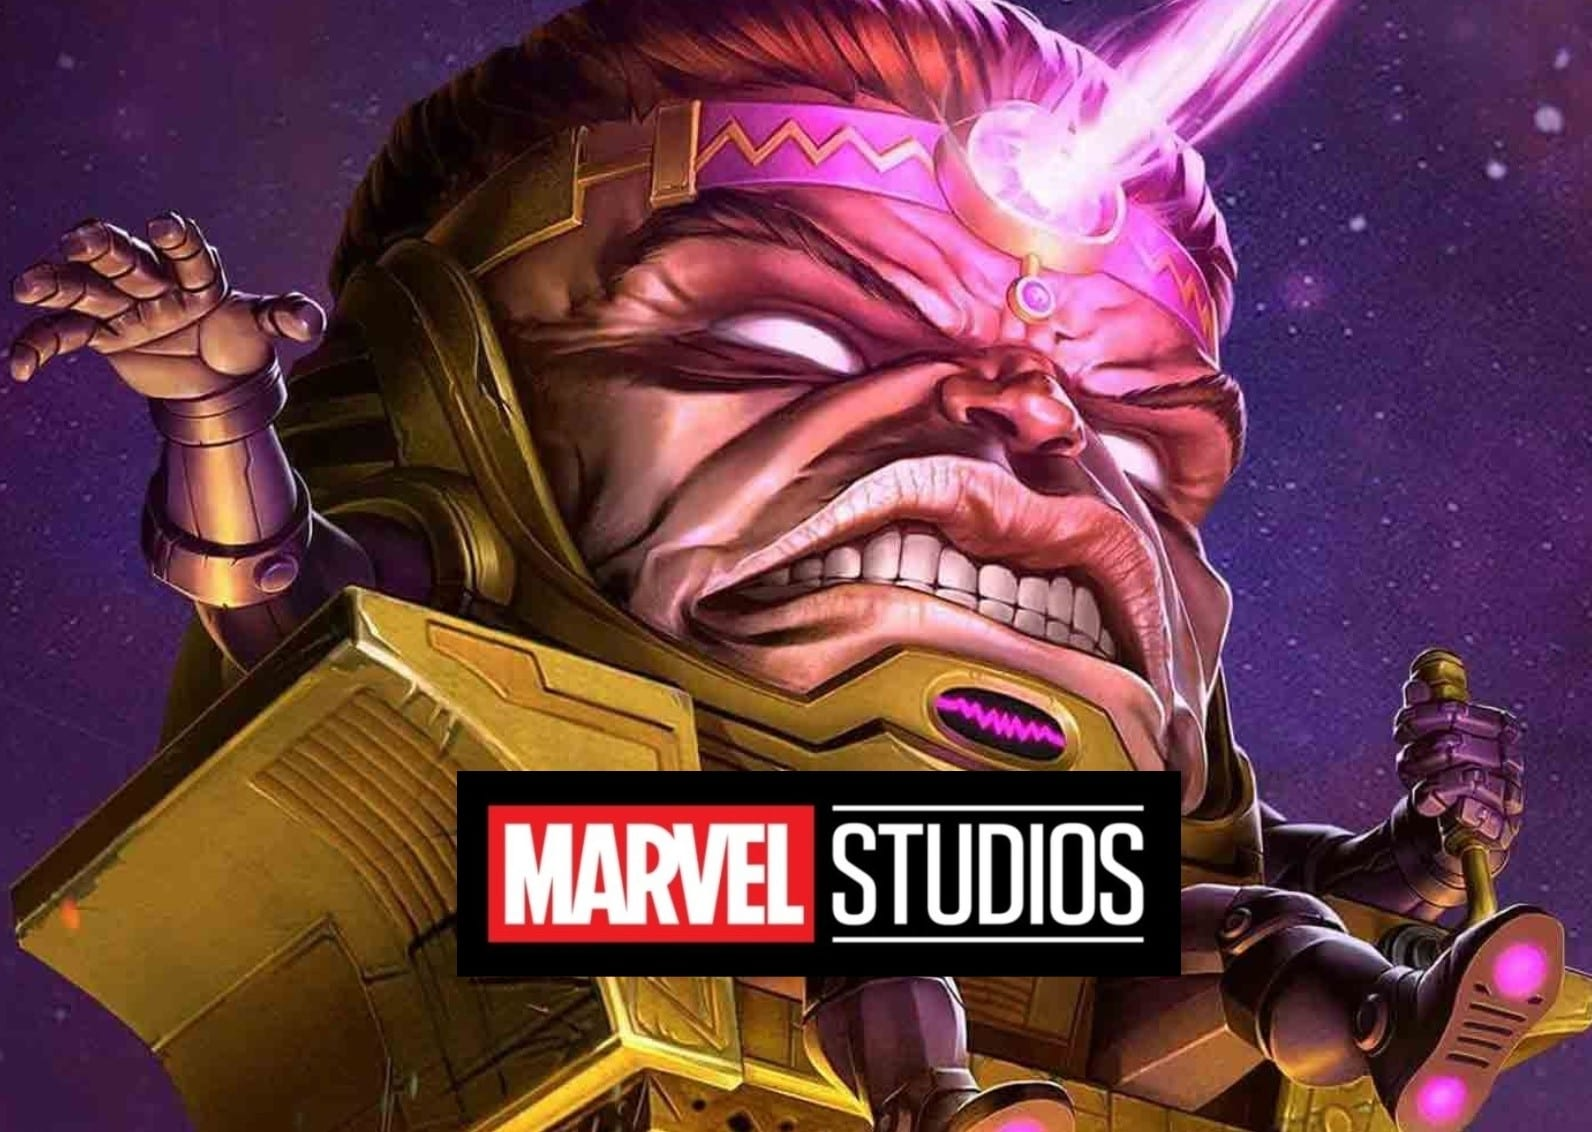 Agents of S.H.I.E.L.D. Showrunners say they were given permission to use M.O.D.O.K., then Marvel Studios changed their minds